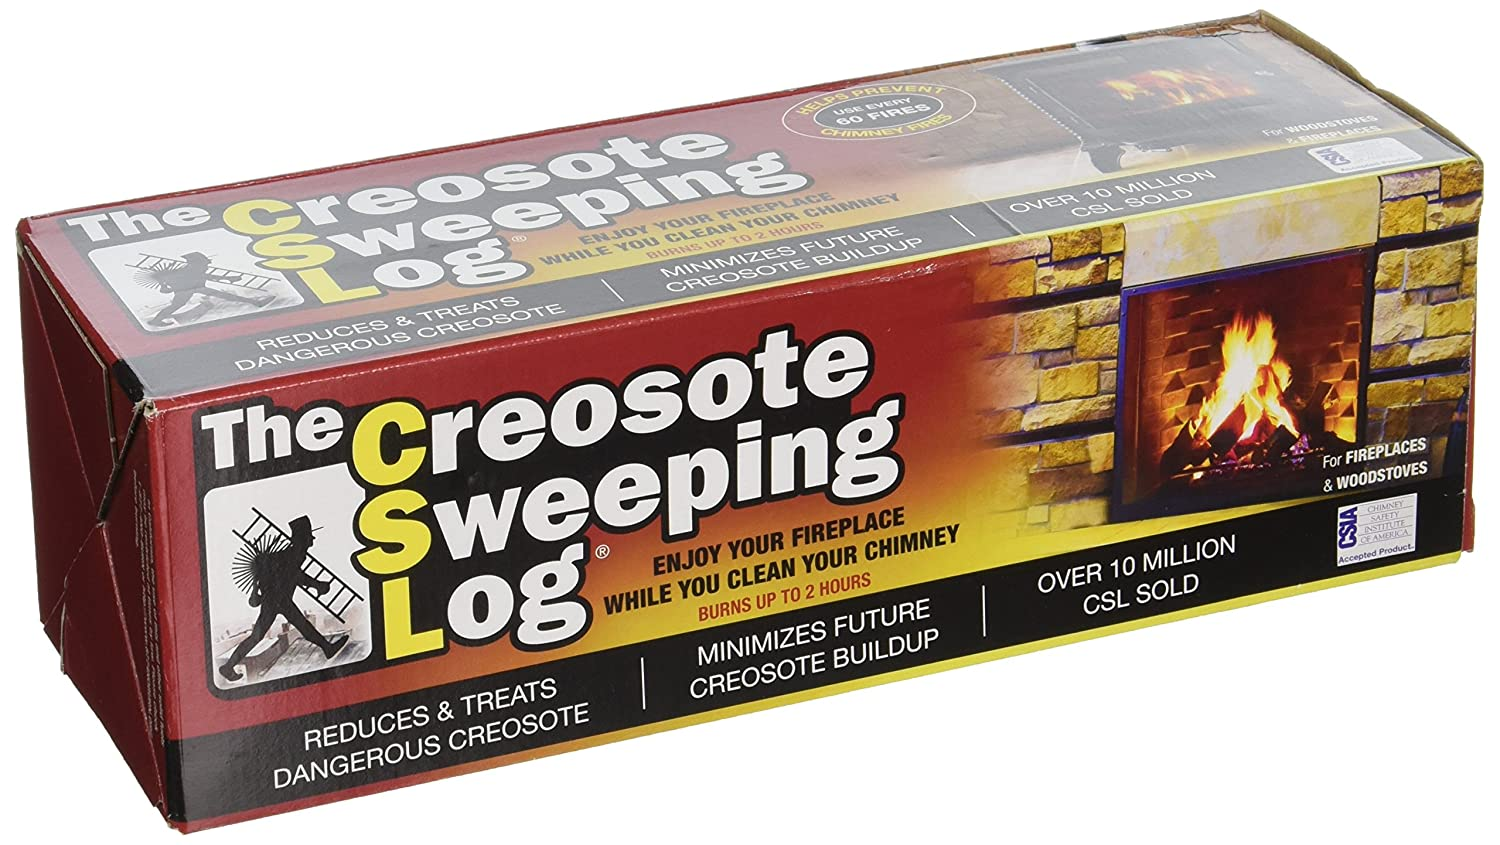 Creosote Sweeping Log For Fireplaces ,1 Pack Joseph Enterprises SL824-12